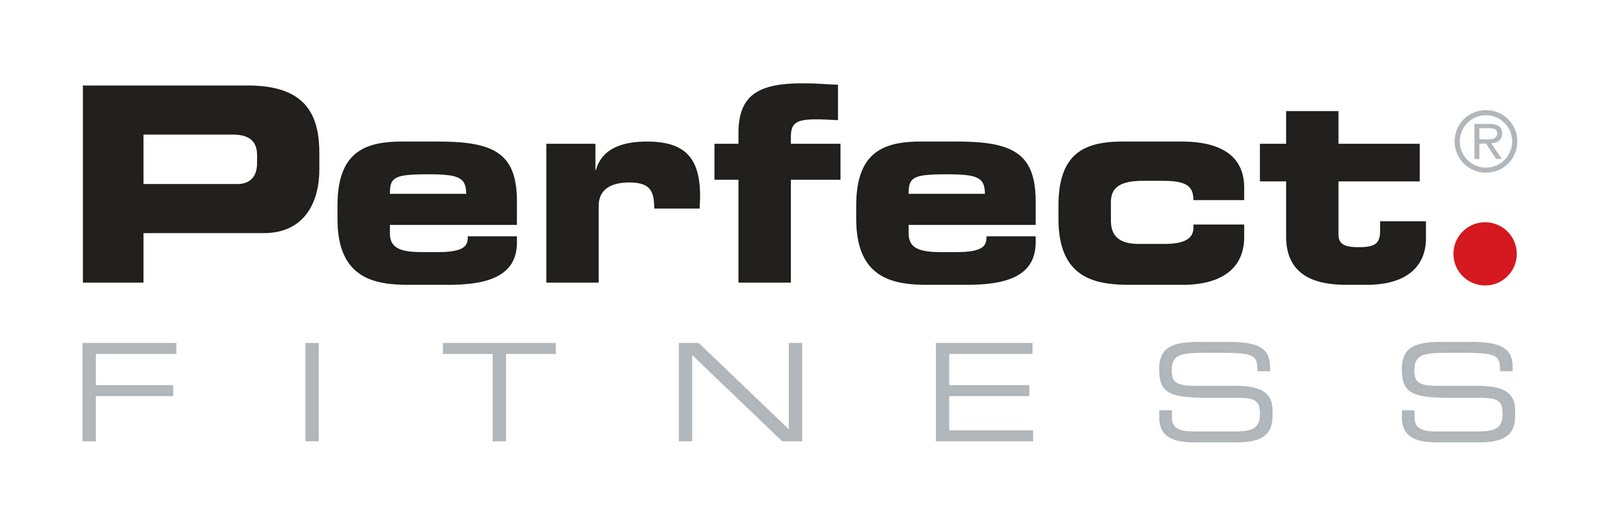 Perfect_Fitness_Logo